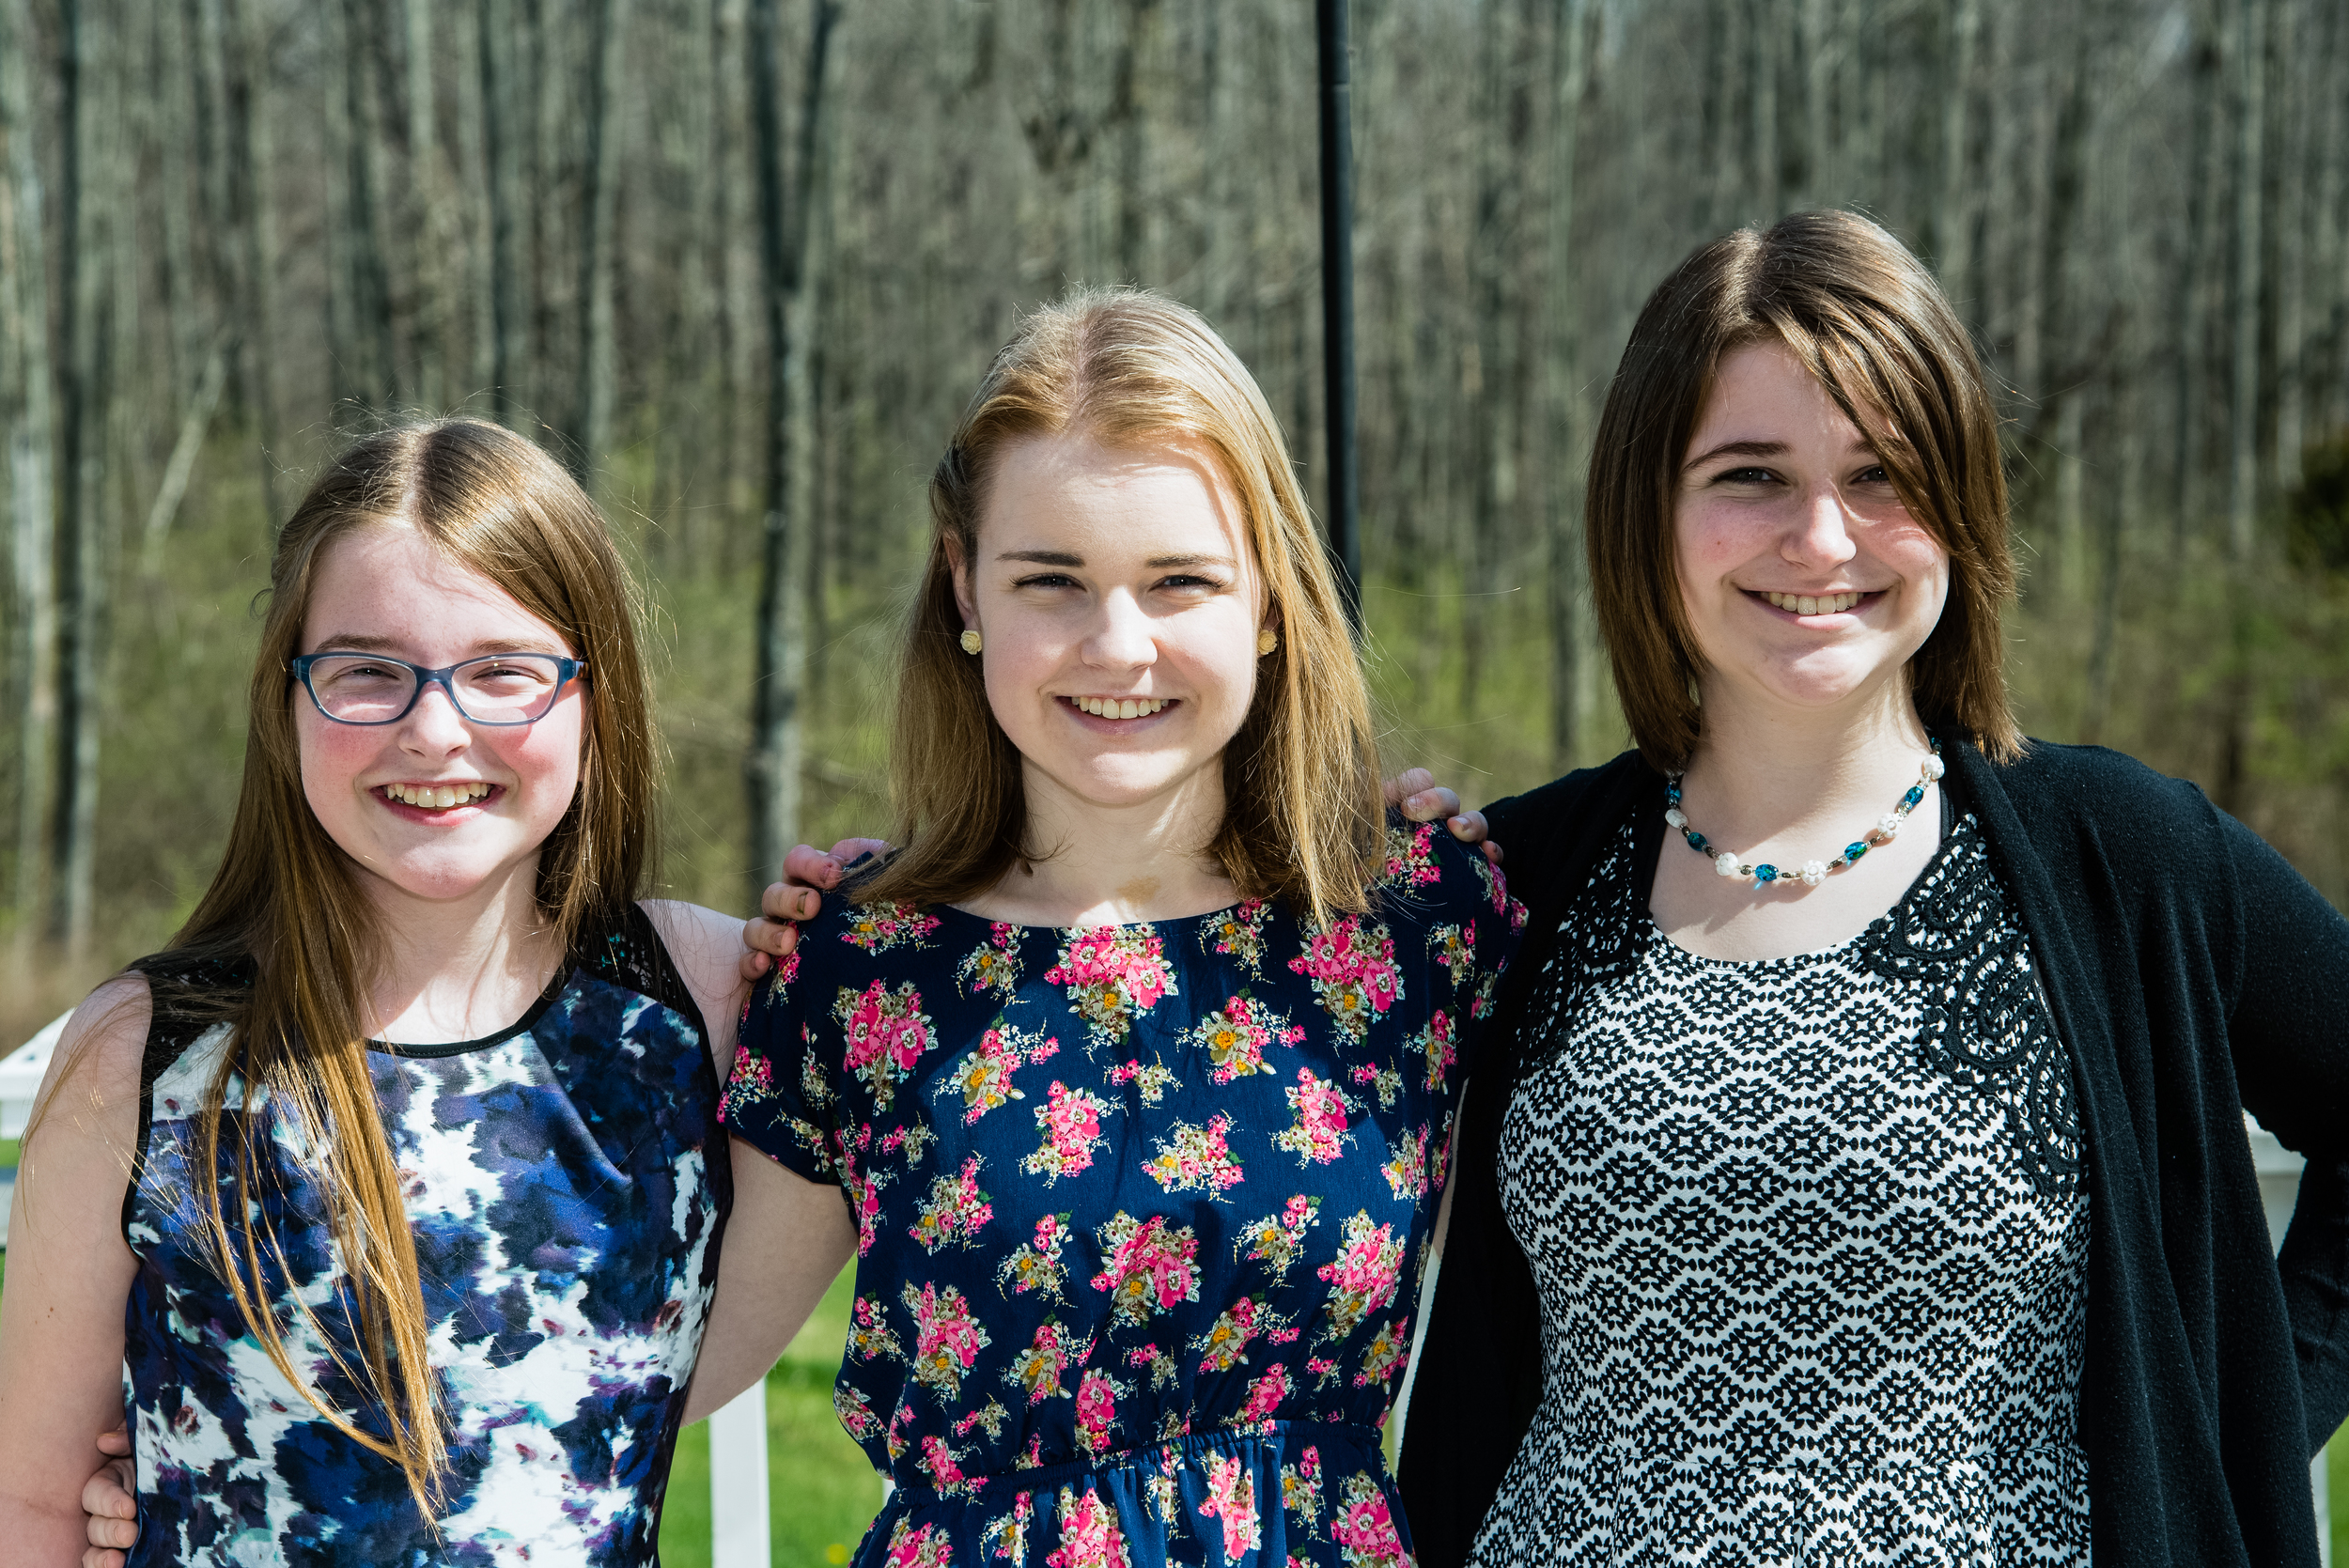 Madeline, Lily and Emma - Easter 2016  Nikon D750 ISO 100 70mm f/5.6 1/400 sec.